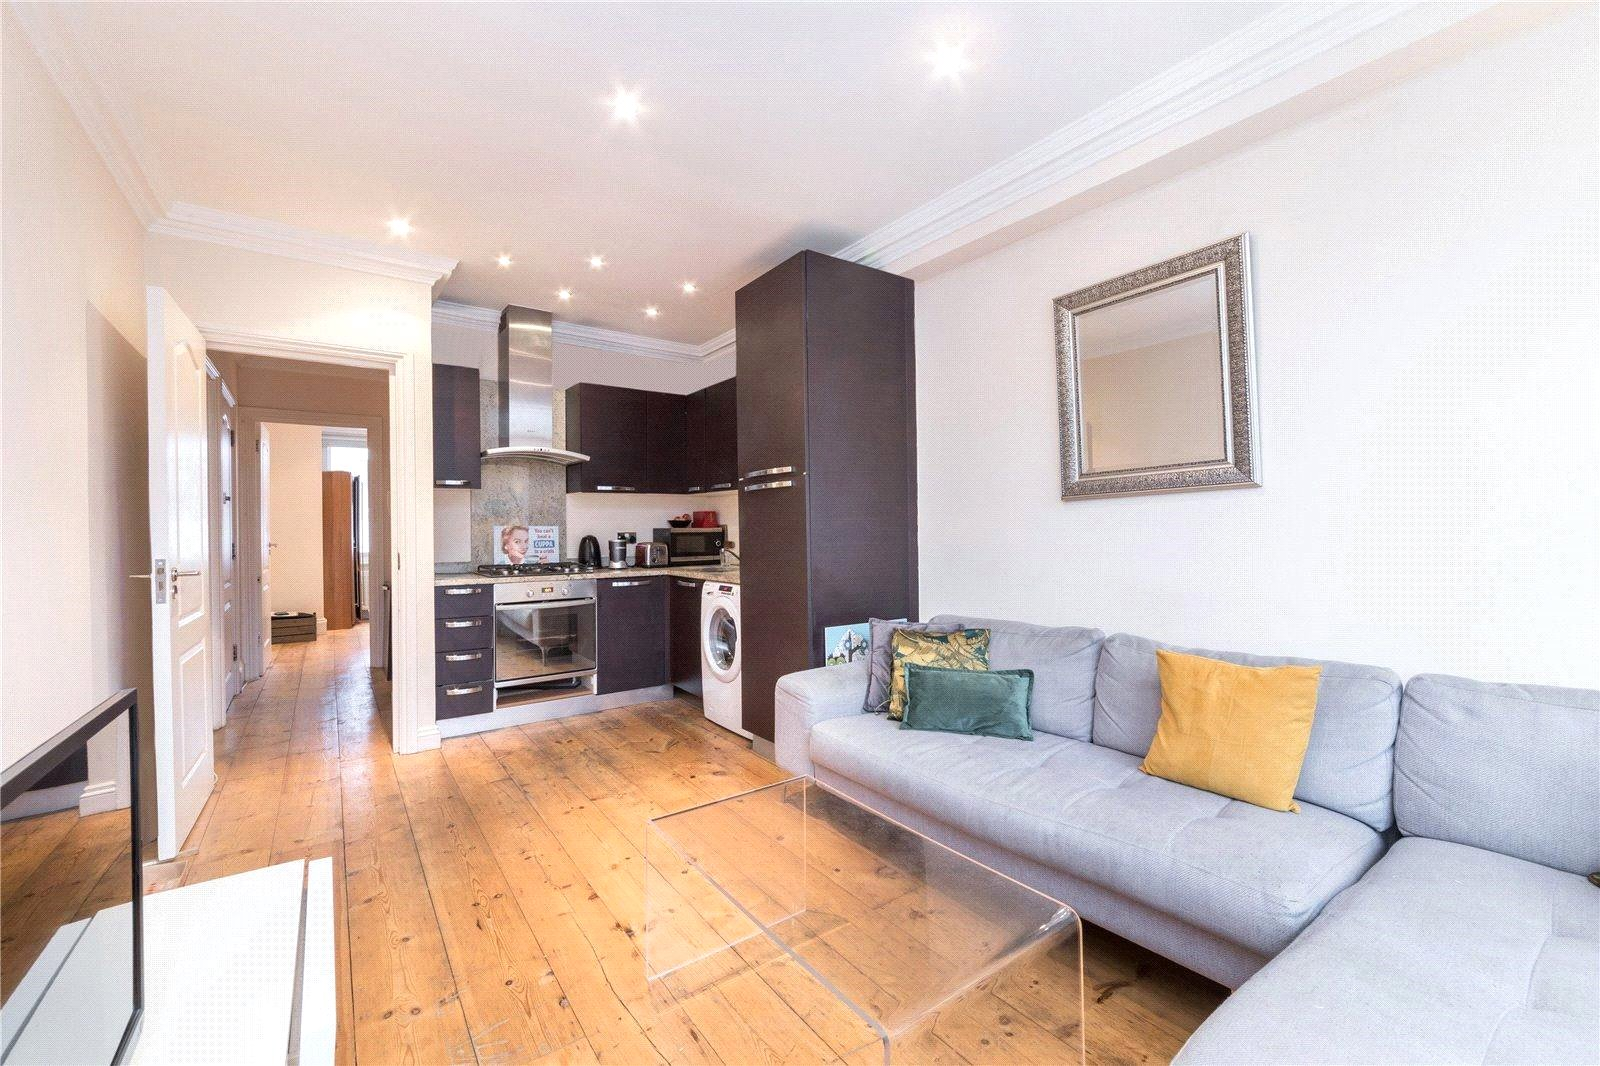 2 bed apartment to rent in Arsenal, N5 1LU  - Property Image 2